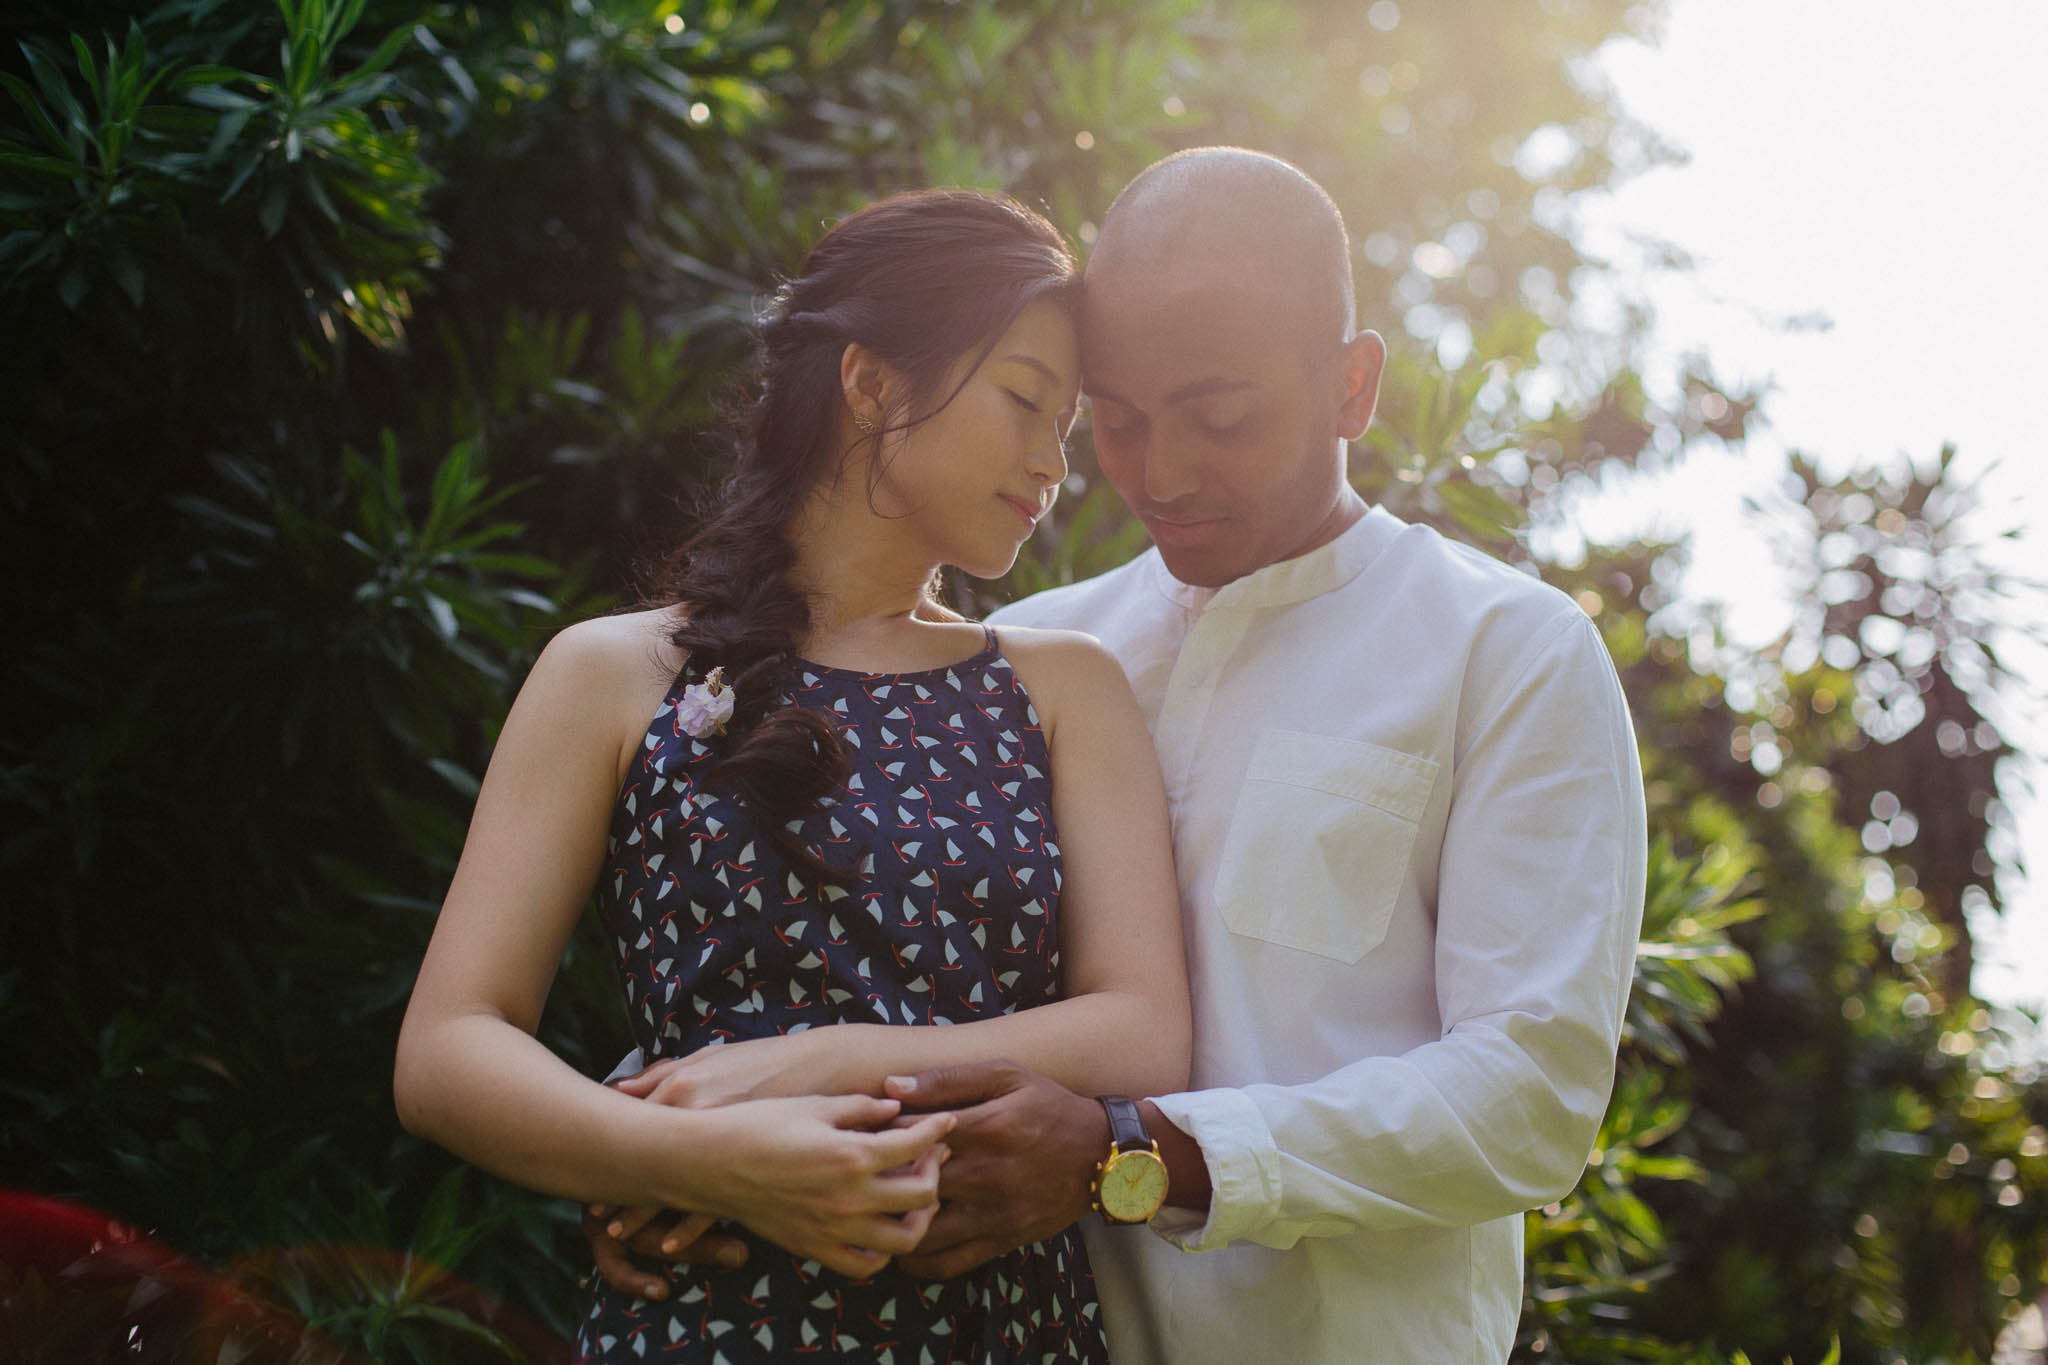 singapore-wedding-photographer-pre-wedding-jonathan-alicia-014.jpg